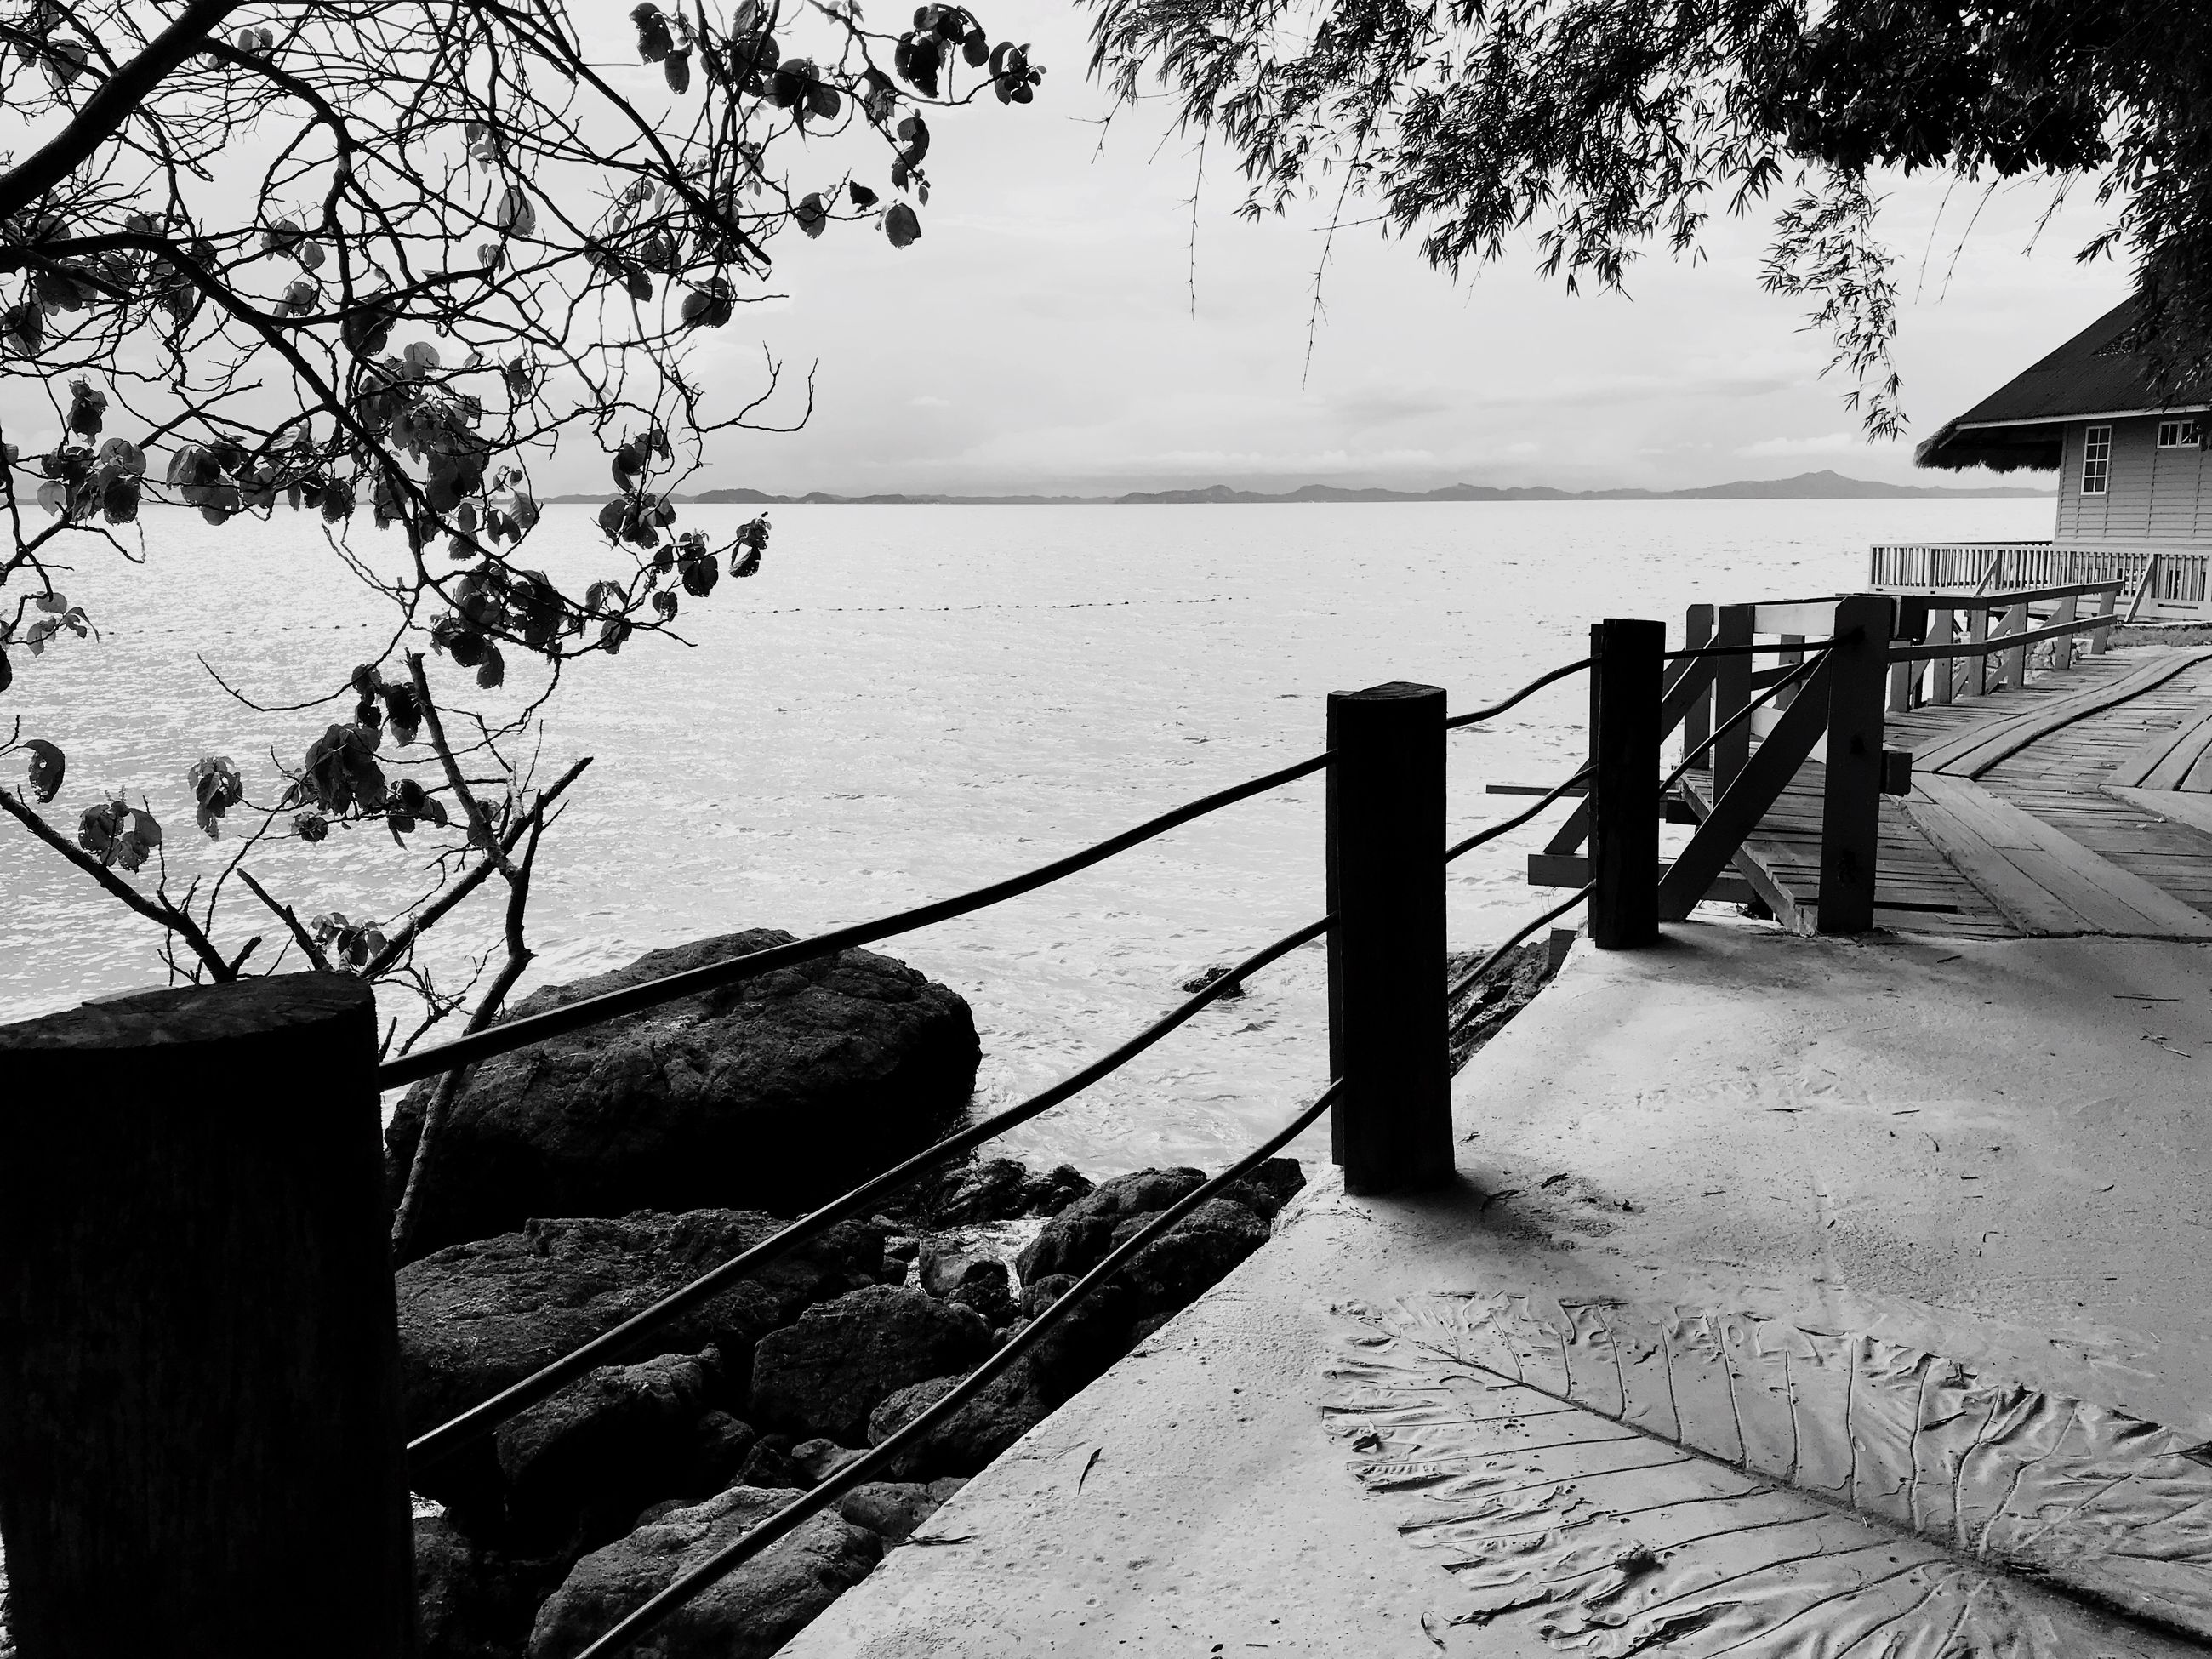 railing, sea, water, nature, outdoors, tranquility, scenics, tranquil scene, tree, day, no people, sky, branch, beauty in nature, architecture